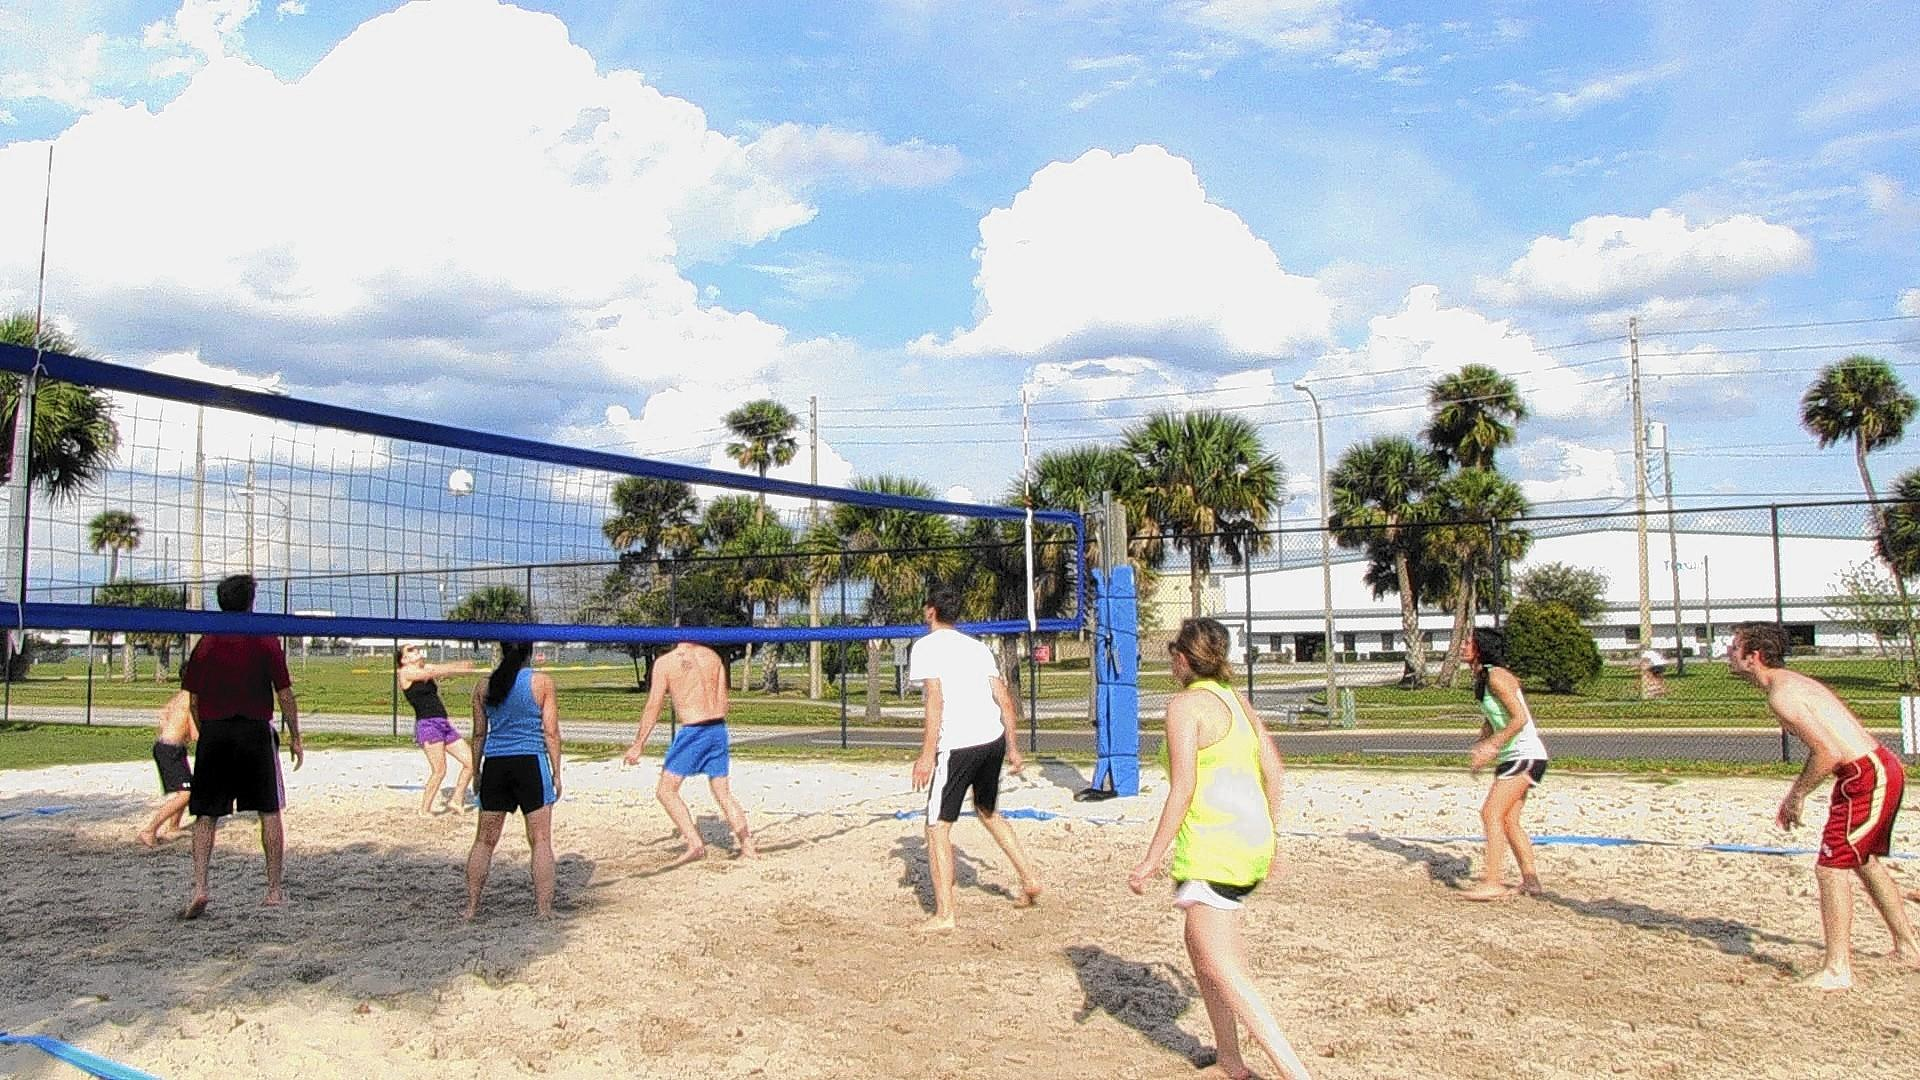 Groups gather for friendly games of beach volleyball on Sundays at Orlando's Festival Park.